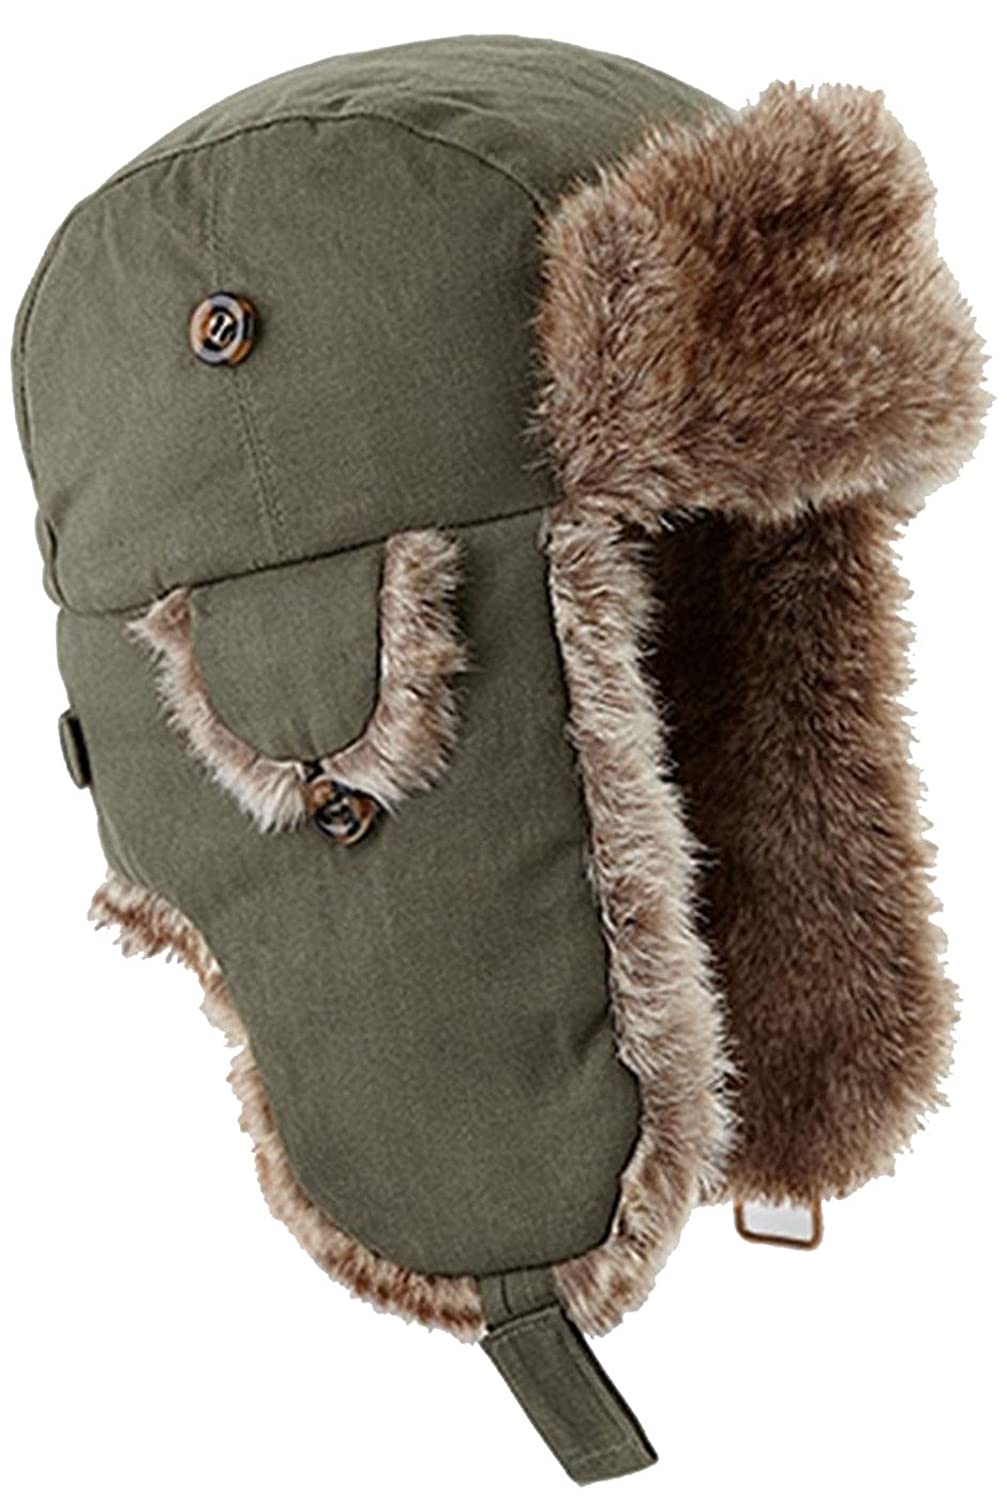 591eb66db5d Beechfield Urban Trapper Olive Green S-m  Amazon.co.uk  Clothing